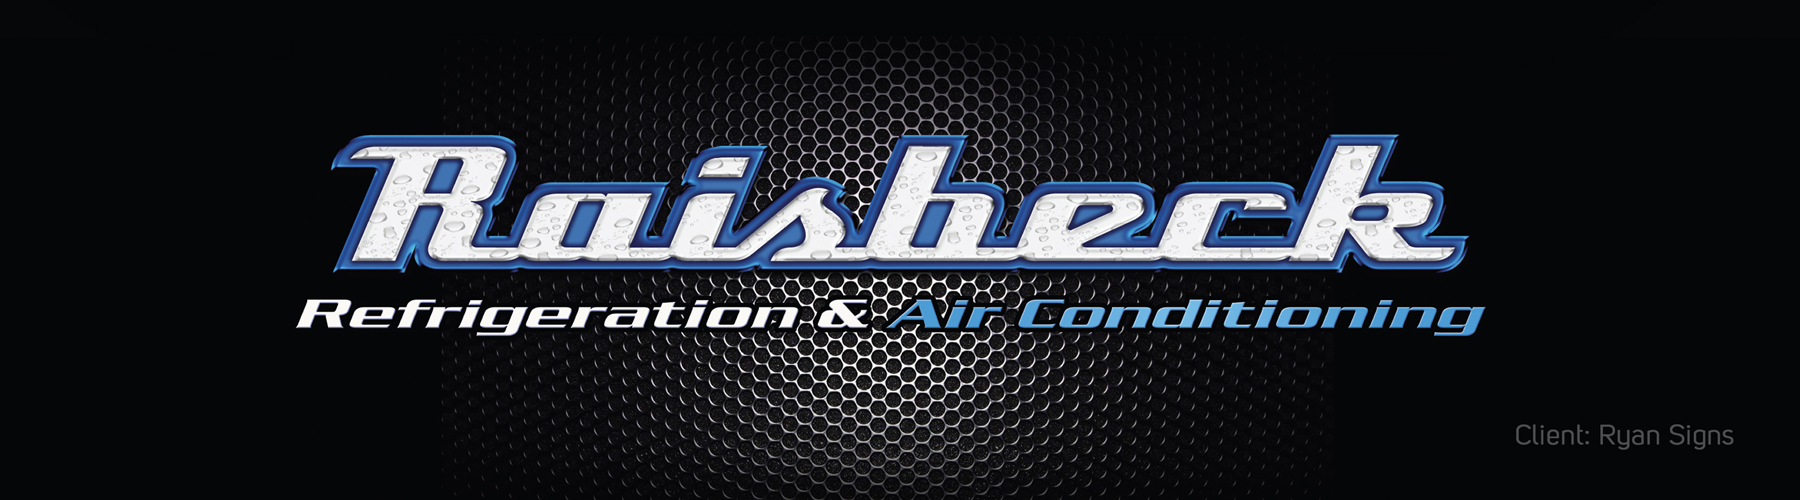 Raisbeck Refrigeration and Air Conditioning logo display banner